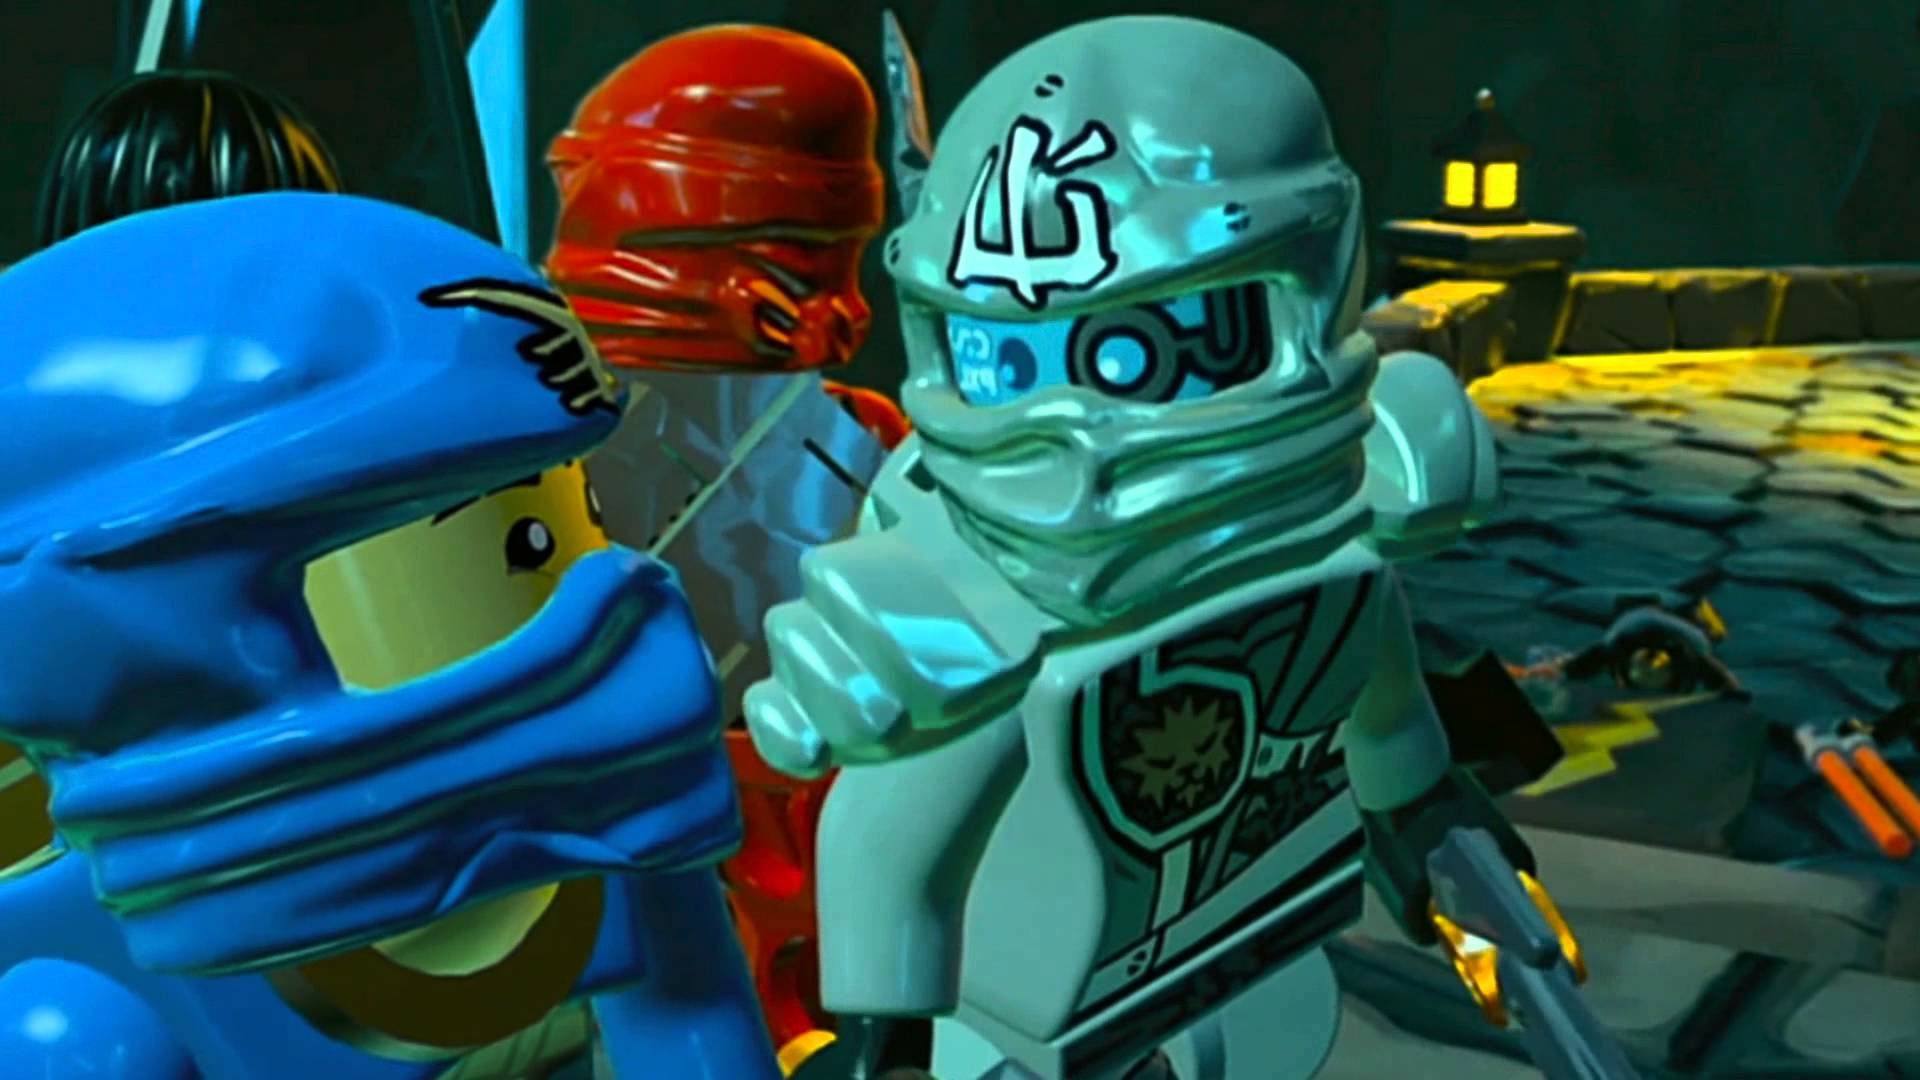 1920x1080 LEGO NINJAGO: SHADOW OF RONIN NOW AVAILABLE ON iPHONE, iPAD and iPOD TOUCH